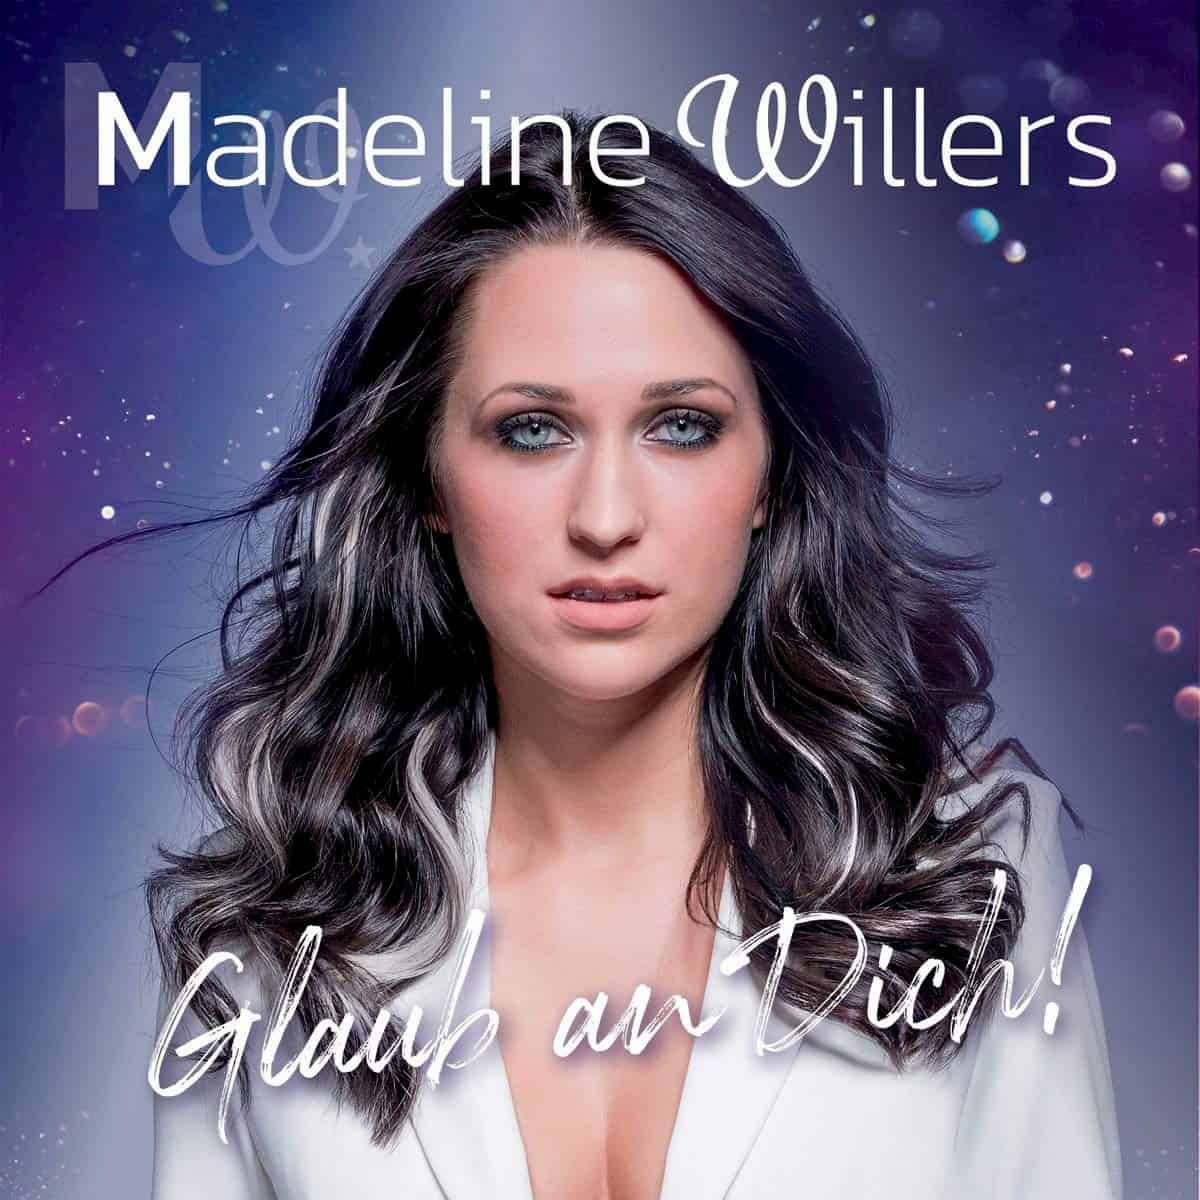 Madeline Willers CD Glaube an Dich